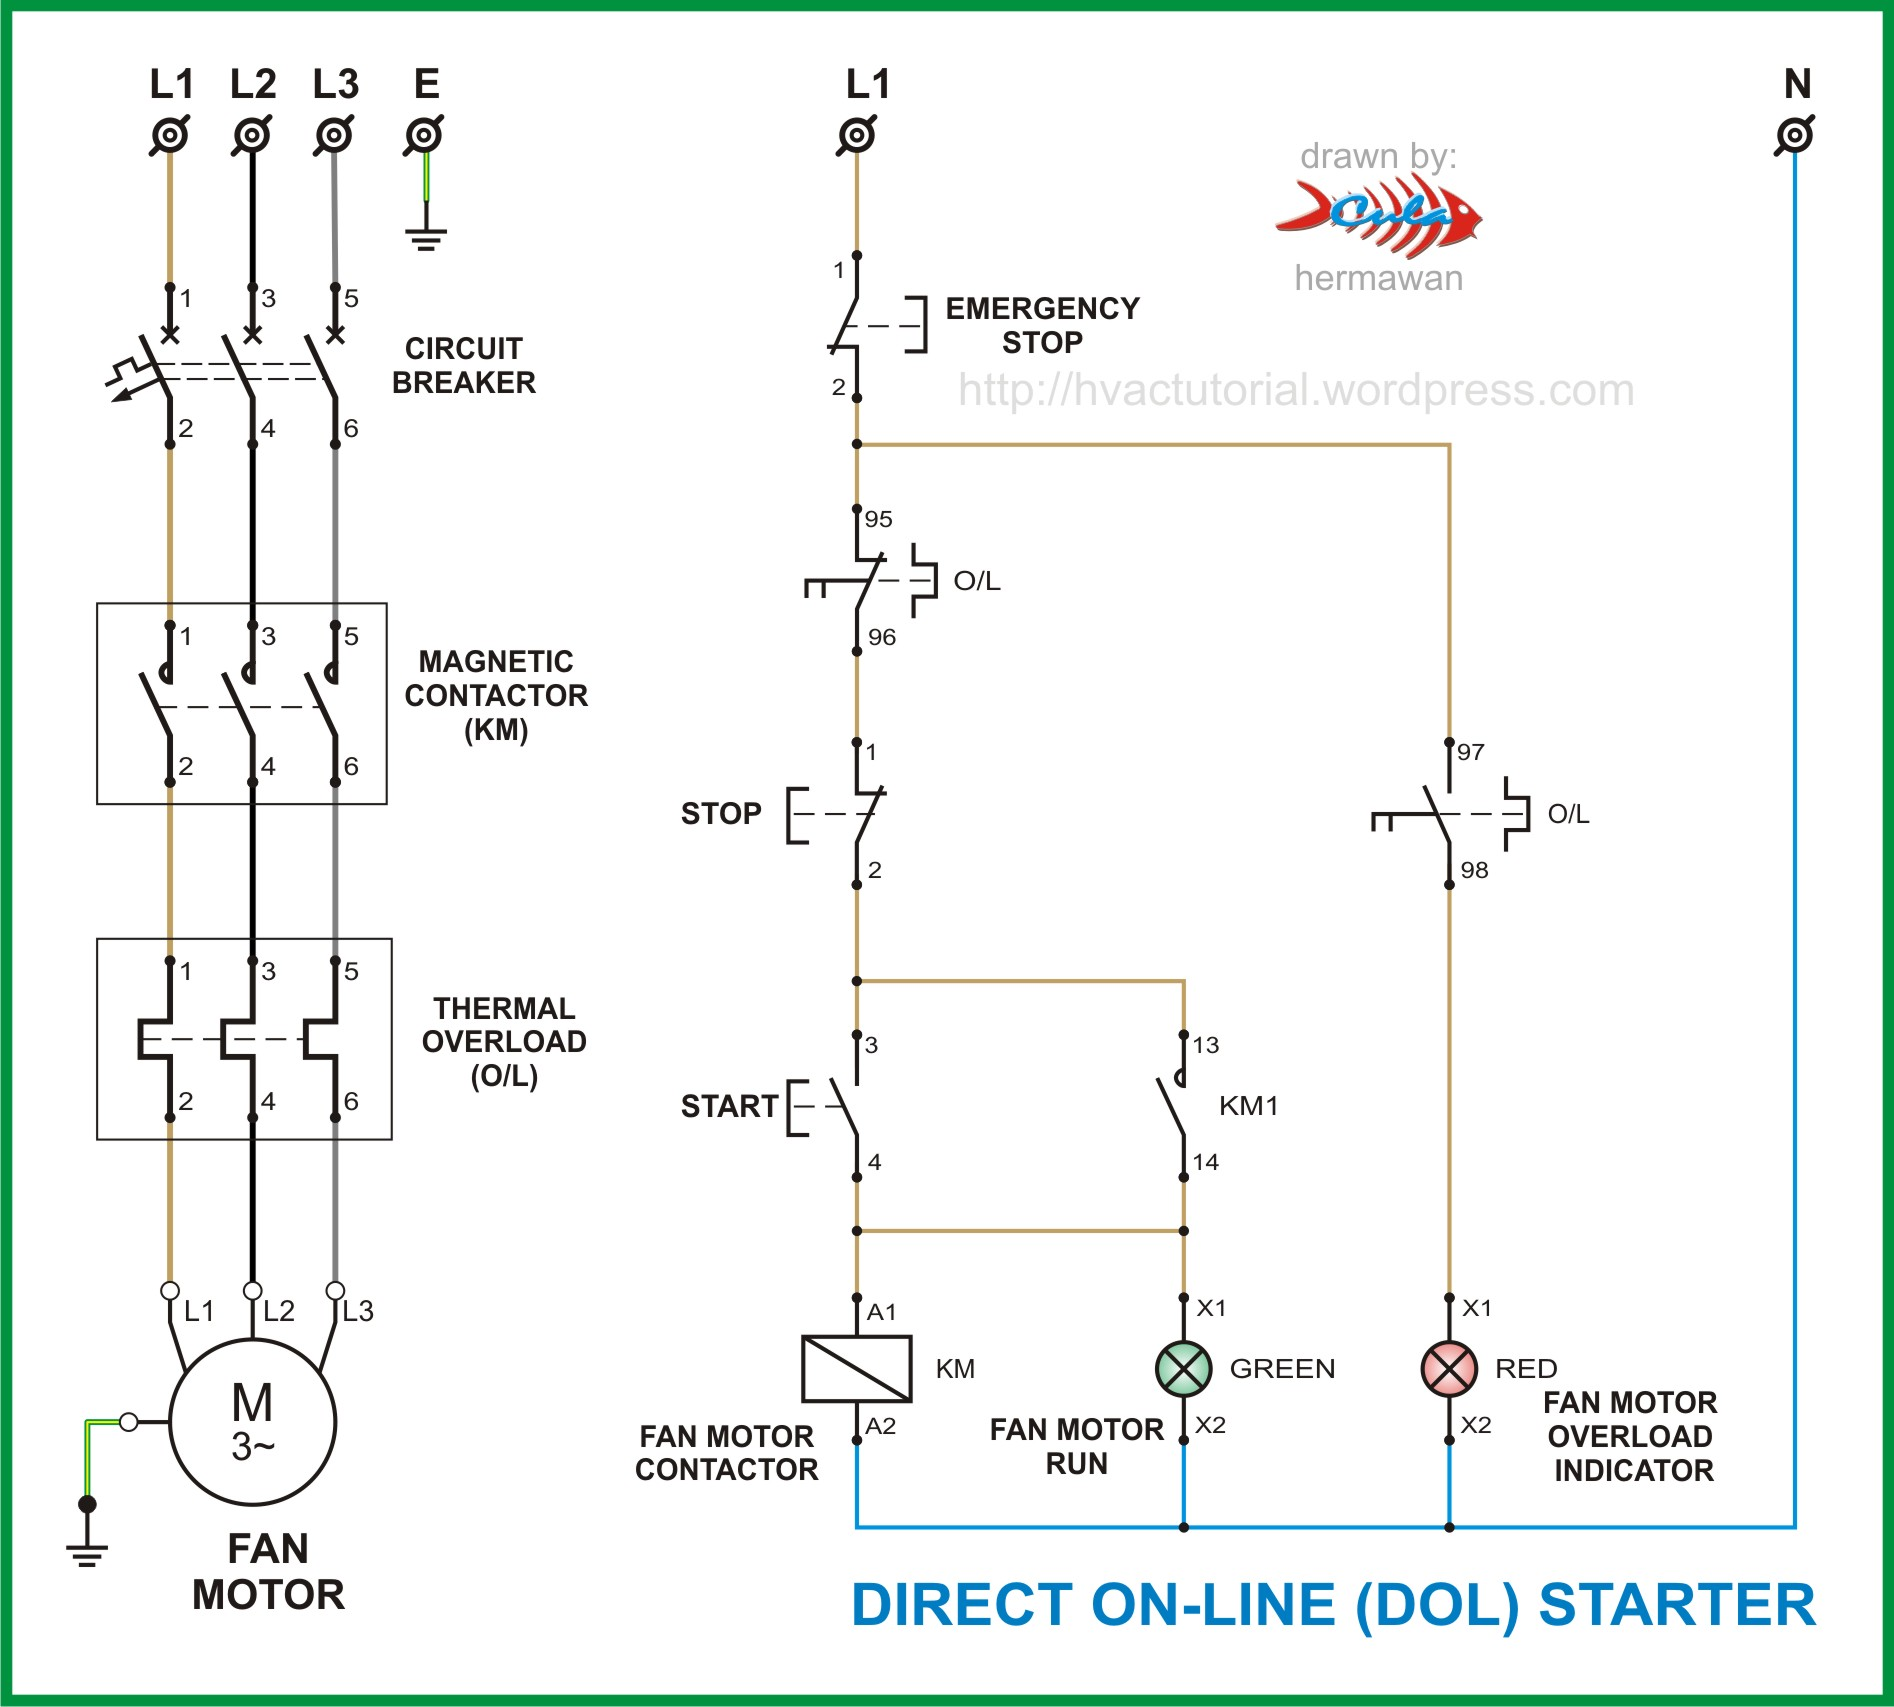 3 phase dol wiring diagram 2000 honda civic ecu starter hermawan 39s blog refrigeration and air